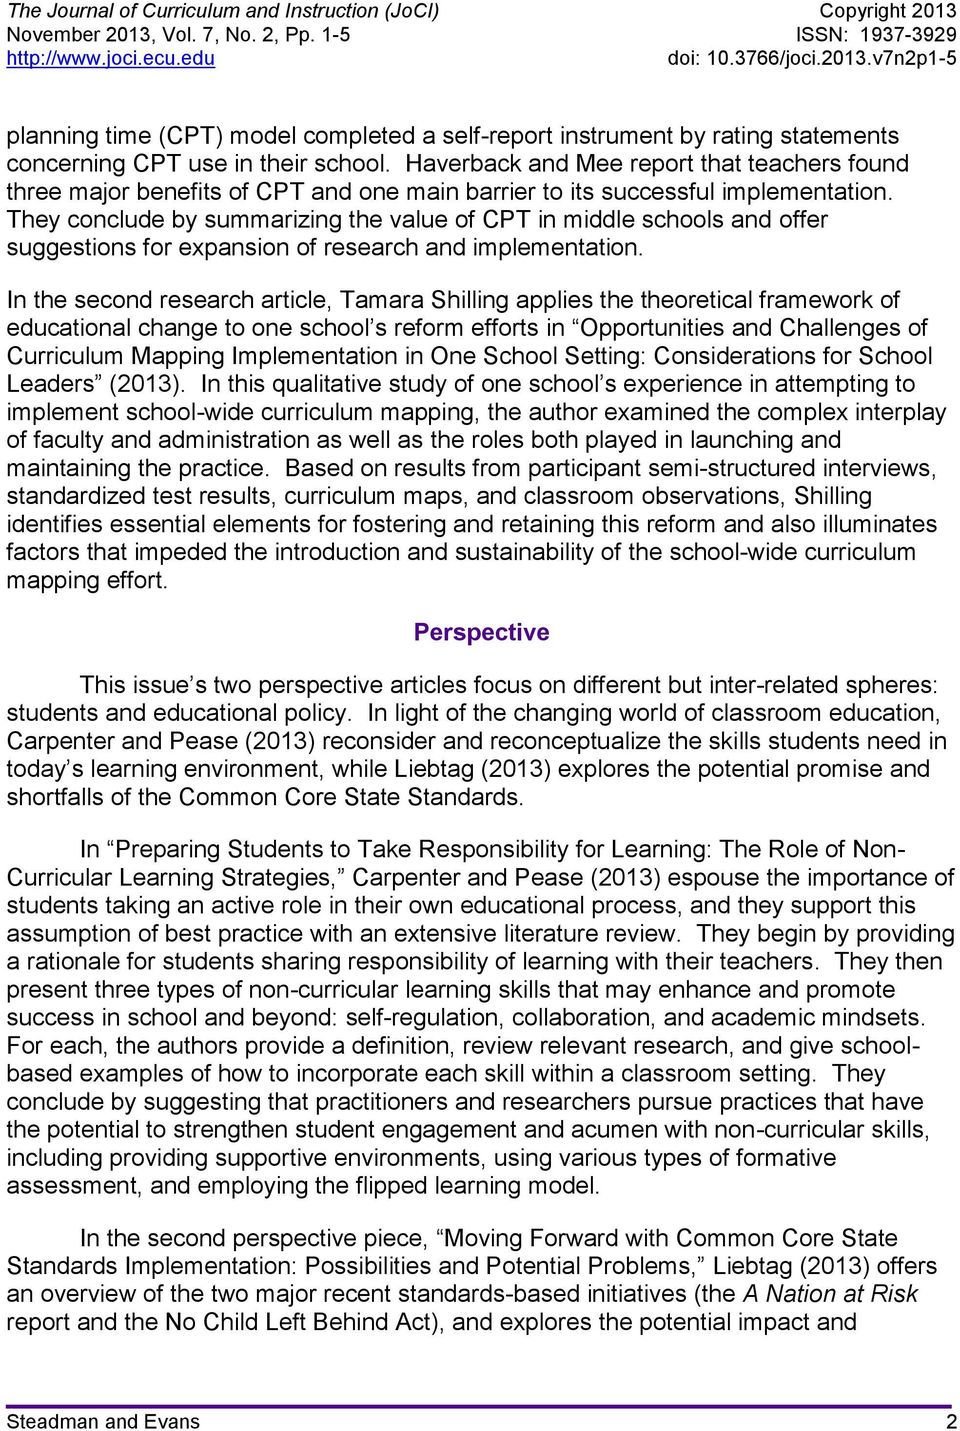 article curriculum and instruction